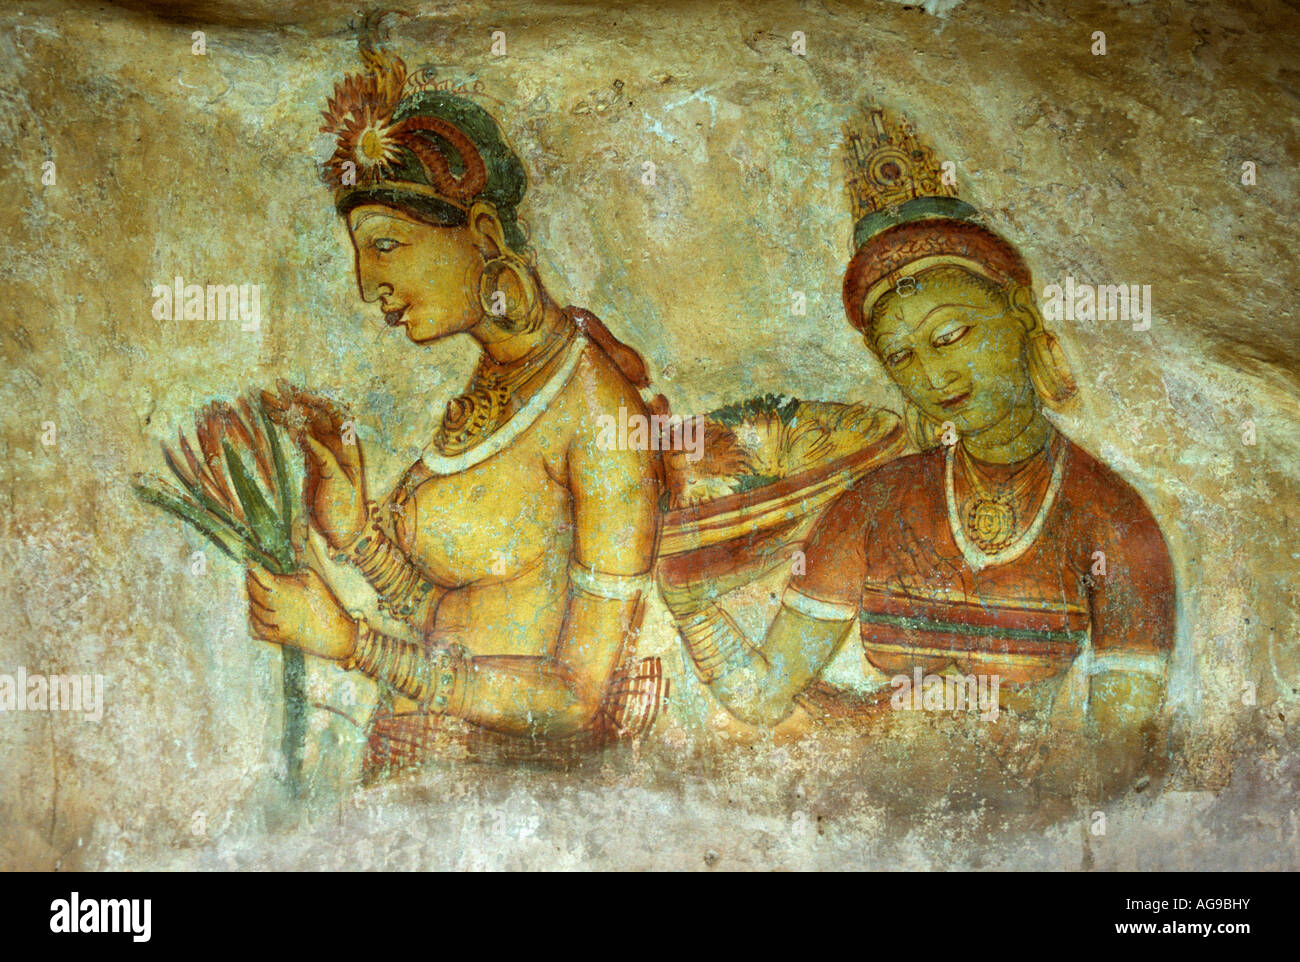 Sri Lanka Sigiriya Wall painting or fresco - Stock Image